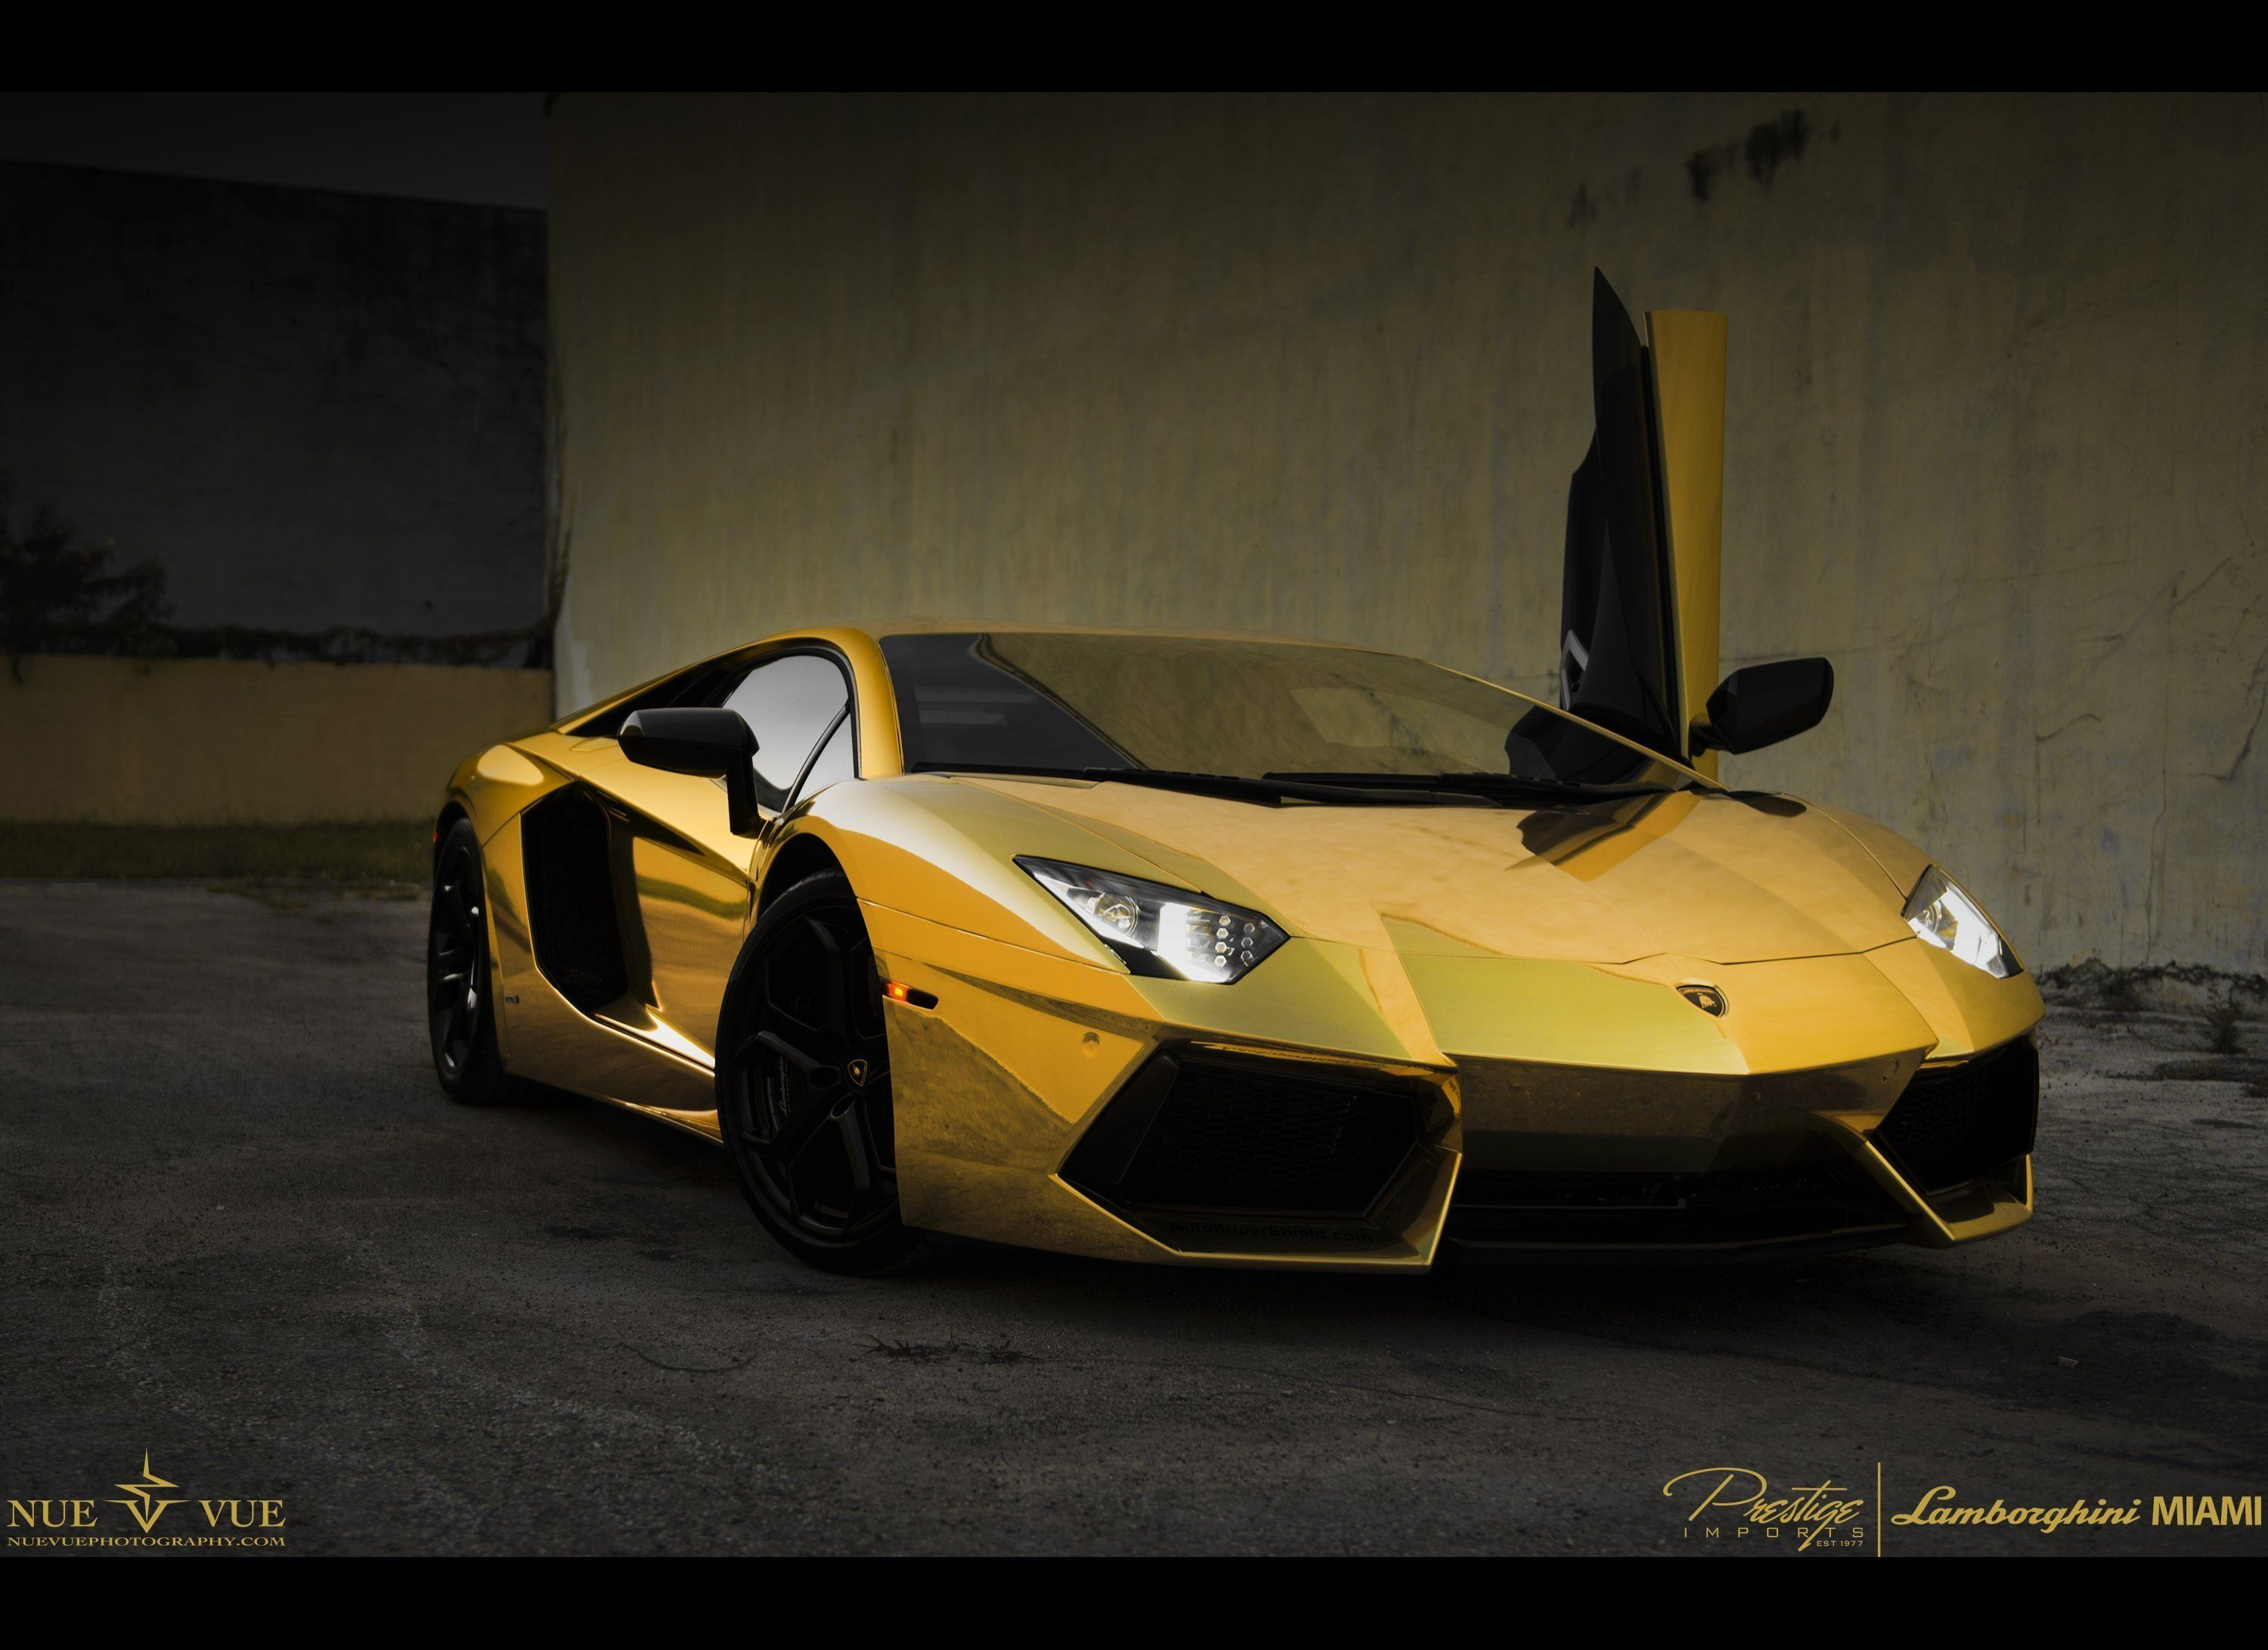 This Gold,Plated Lamborghini Model Car Will Set You Back